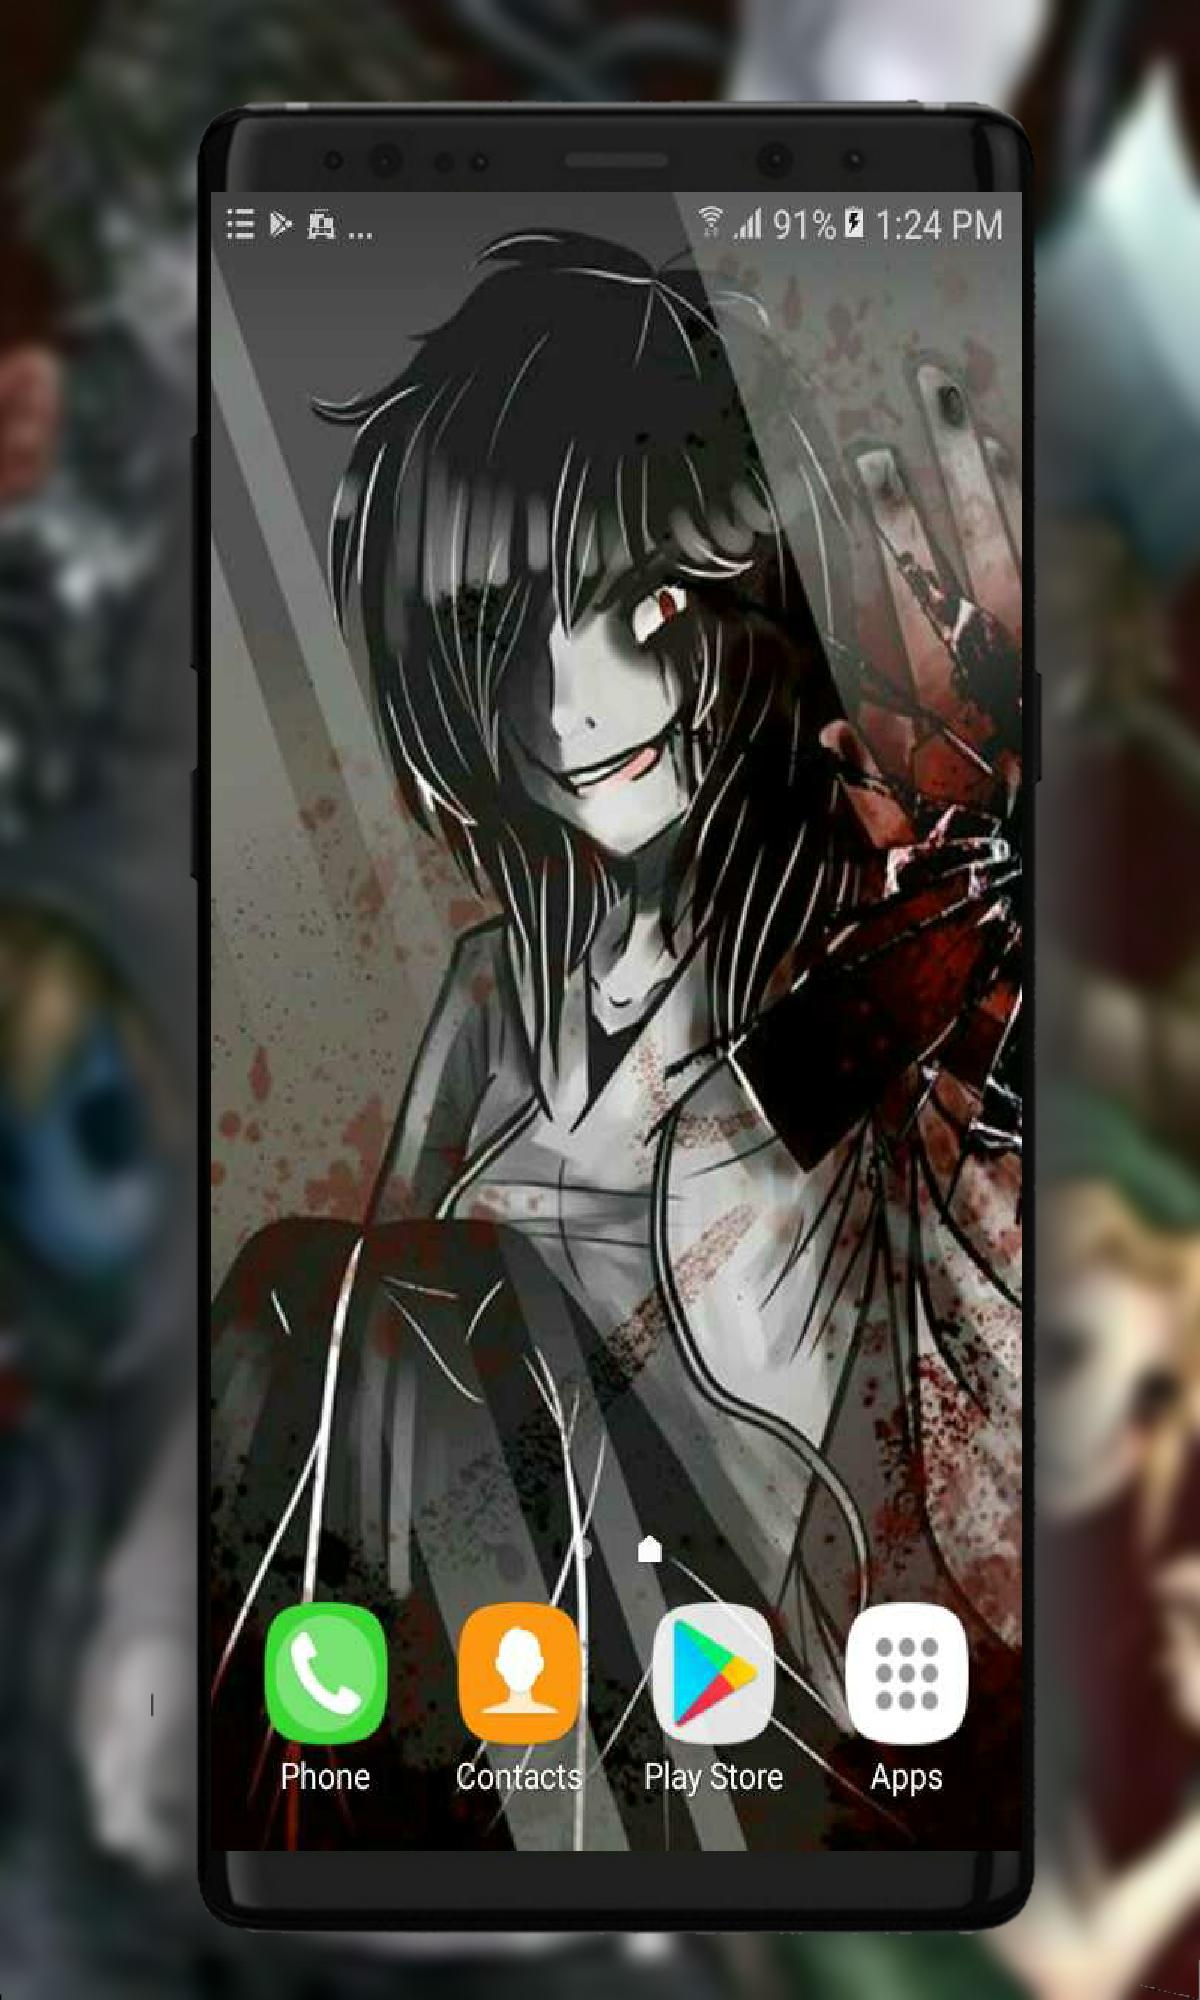 Creepypasta Wallpapers for Android - APK Download